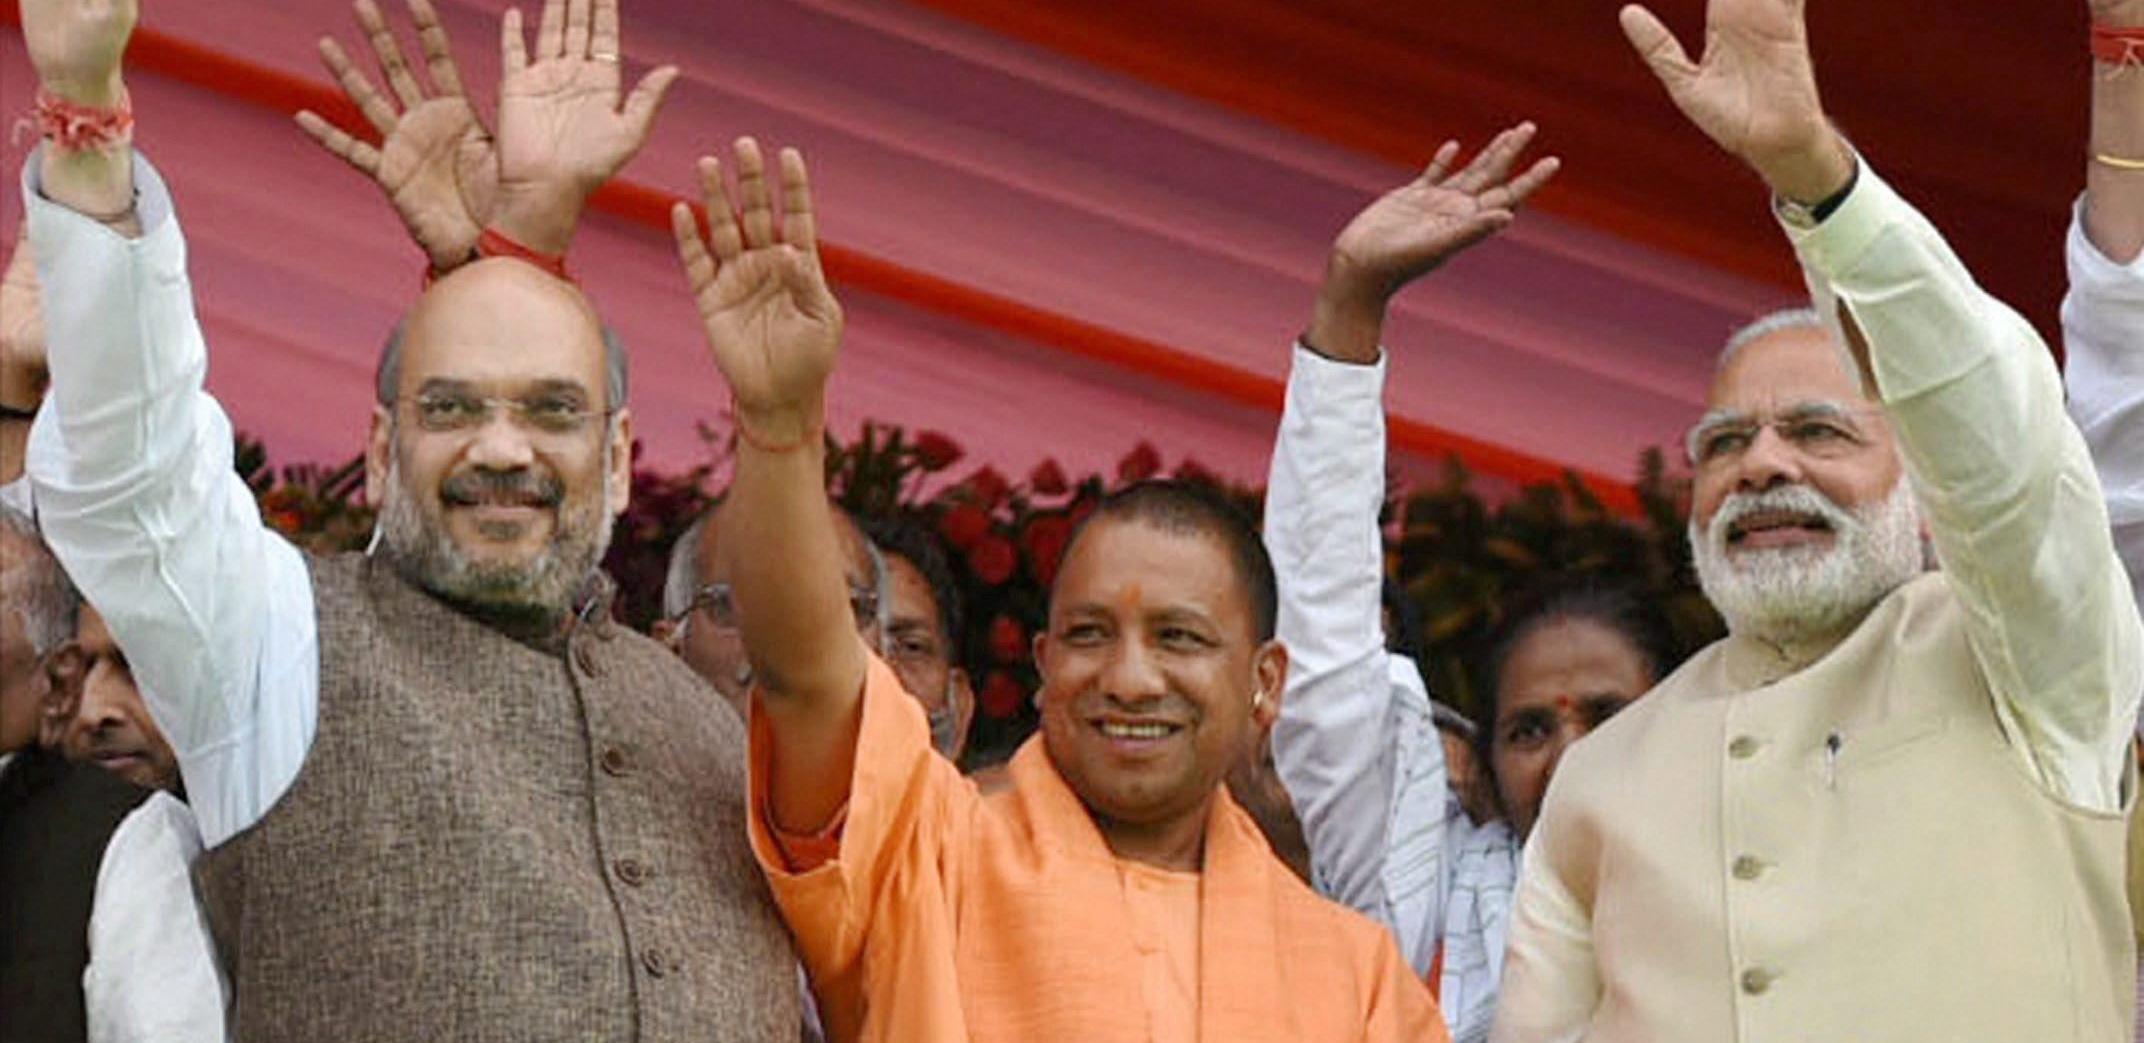 Lucknow: Prime Minister Narendra Modi and BJP President Amit Shah with the new Chief Minister Yogi Adityanath at the swearing-in ceremony of the new government of Uttar Pradesh, in Lucknow on Sunday, March 19. Credit: PTI